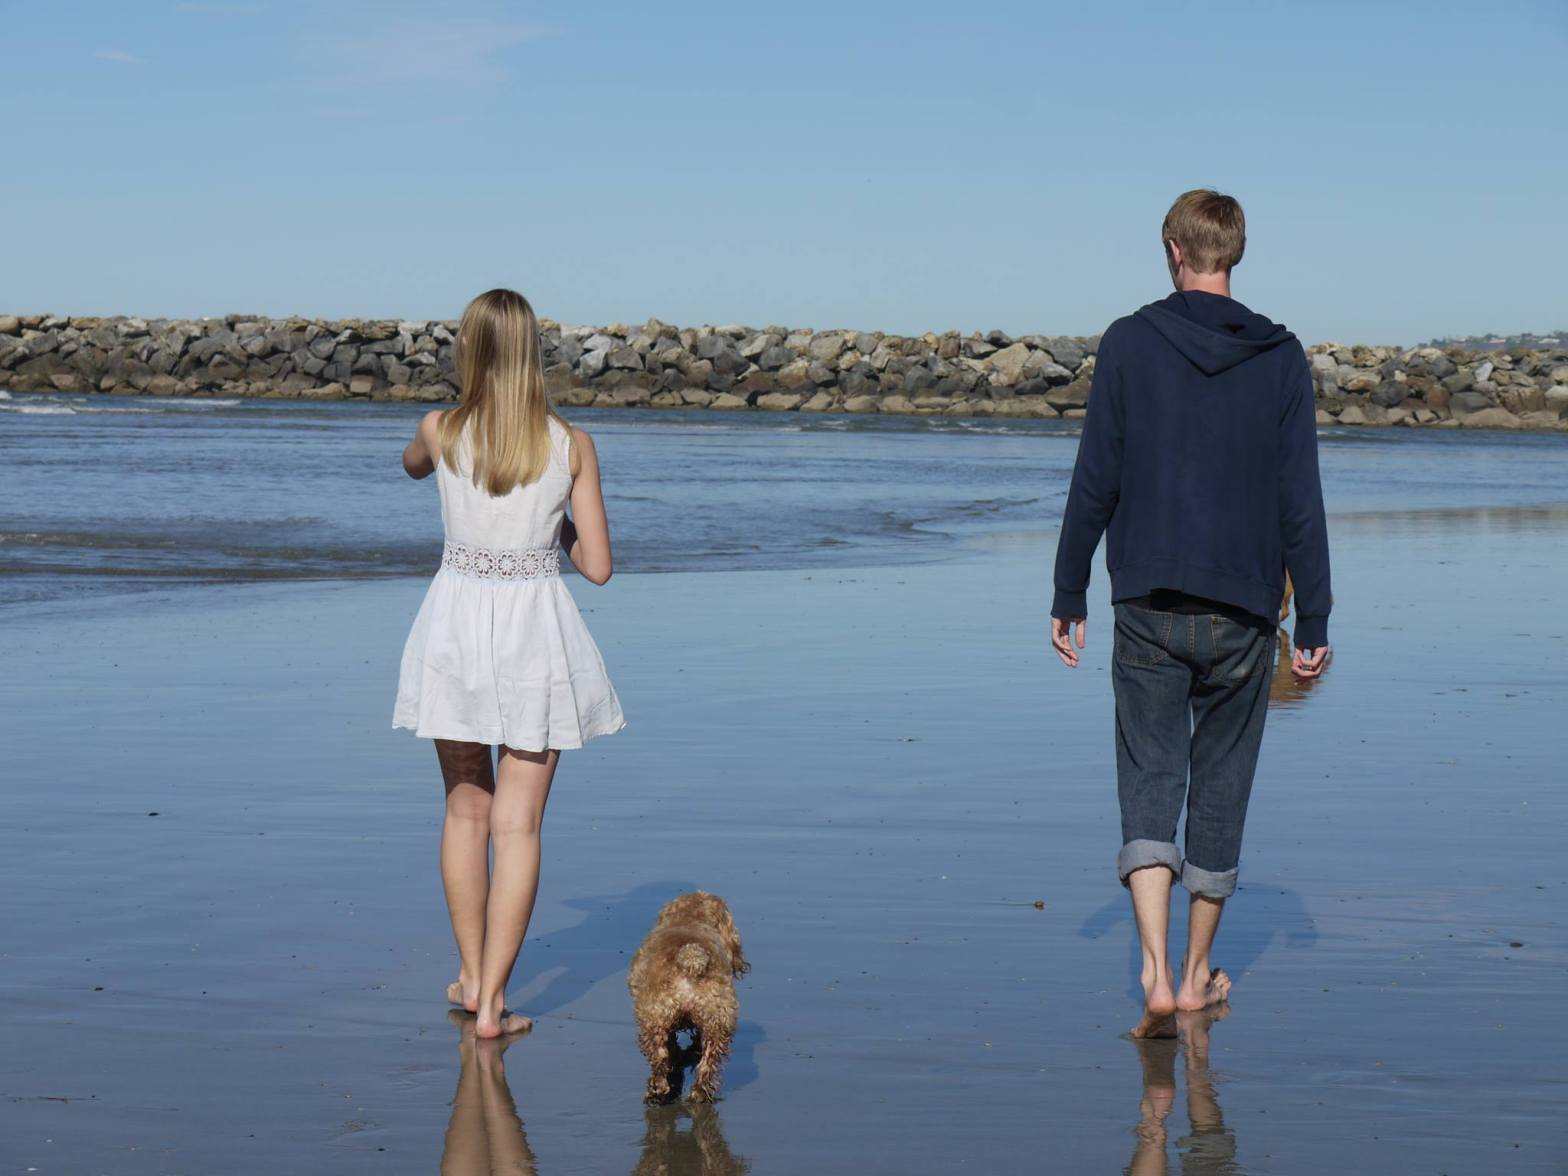 Two people and a dog walking on the beach